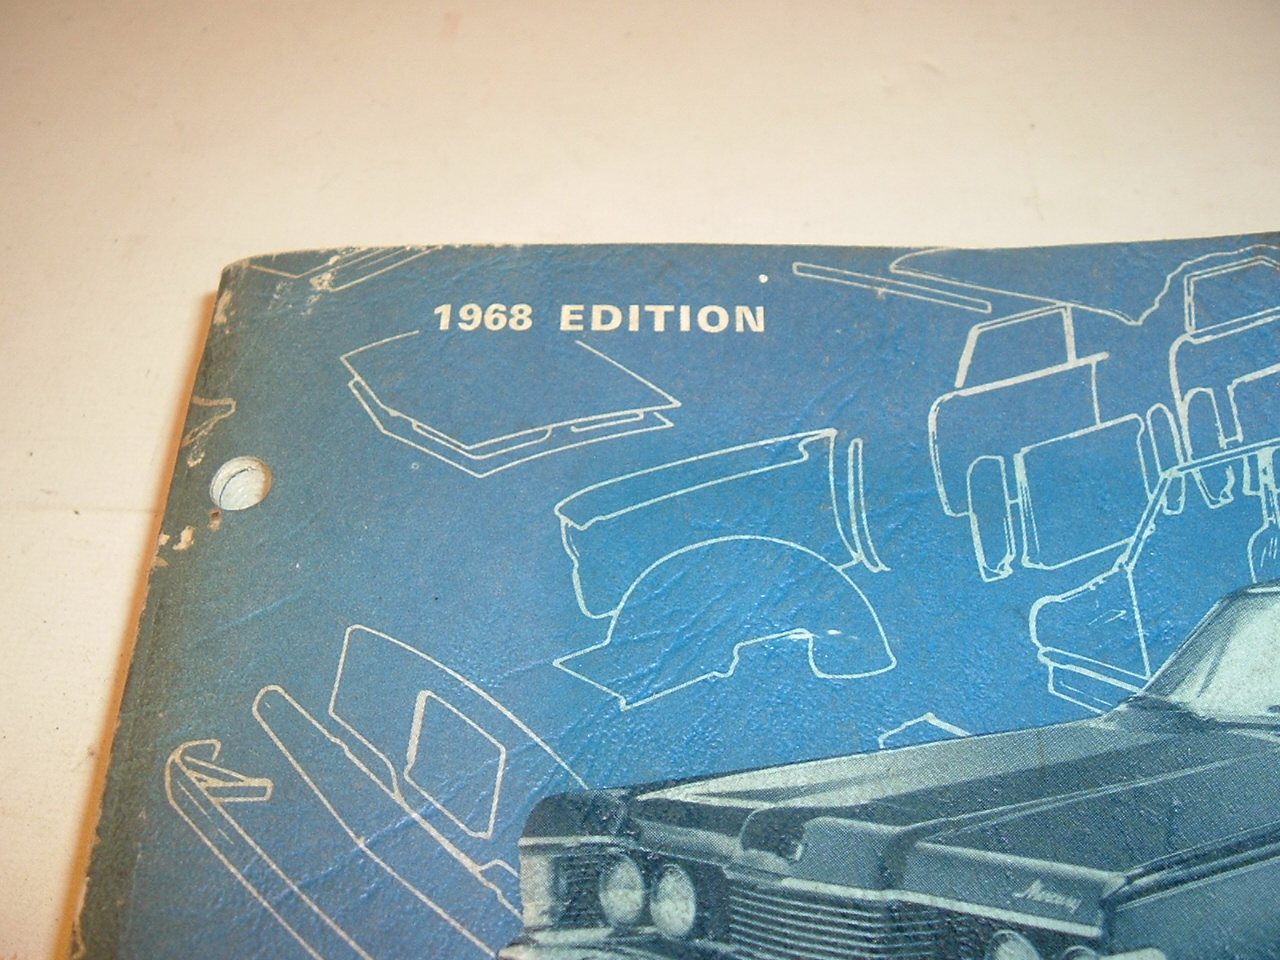 1968 Ford Autolite Quick Reference parts Catalog (A 1968 ford Q ref)